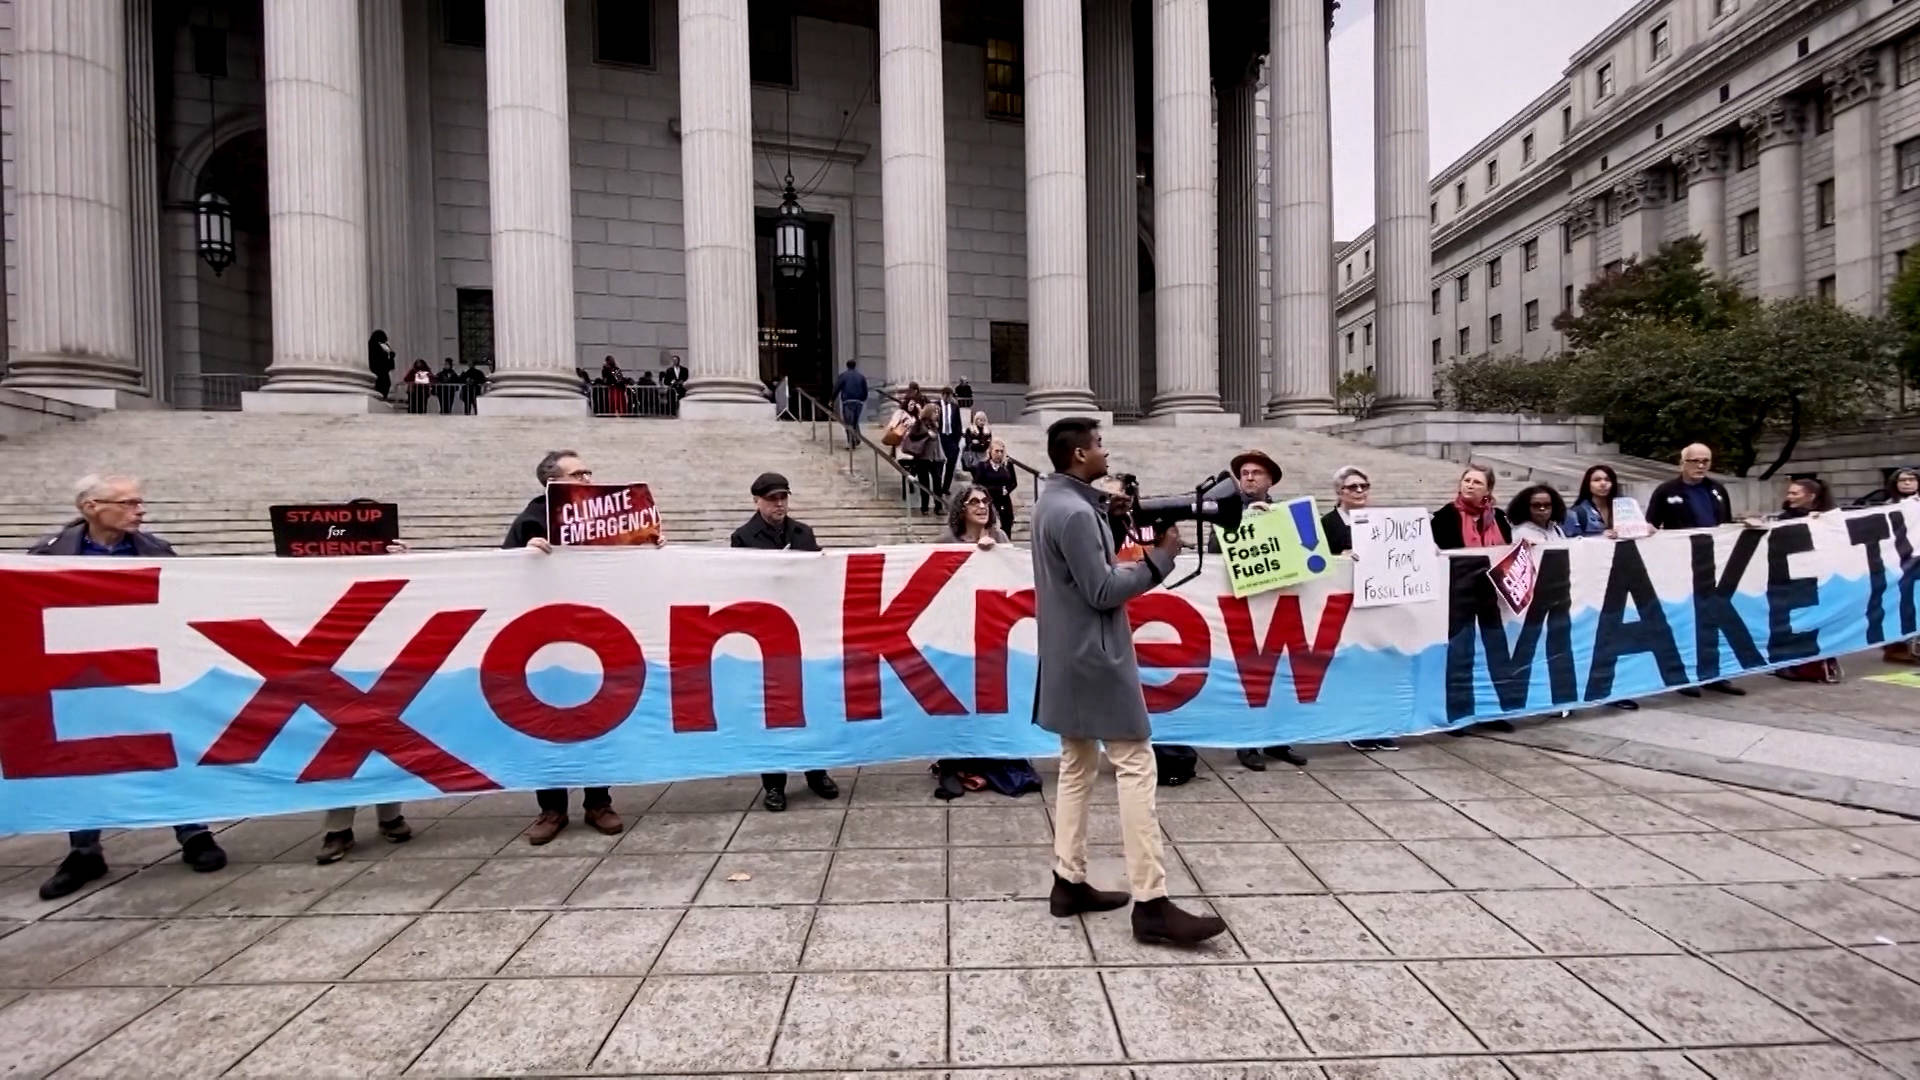 Read more about the article Exxon Exposed: Greenpeace Tricks Top Lobbyists into Naming Senators They Use to Block Climate Action